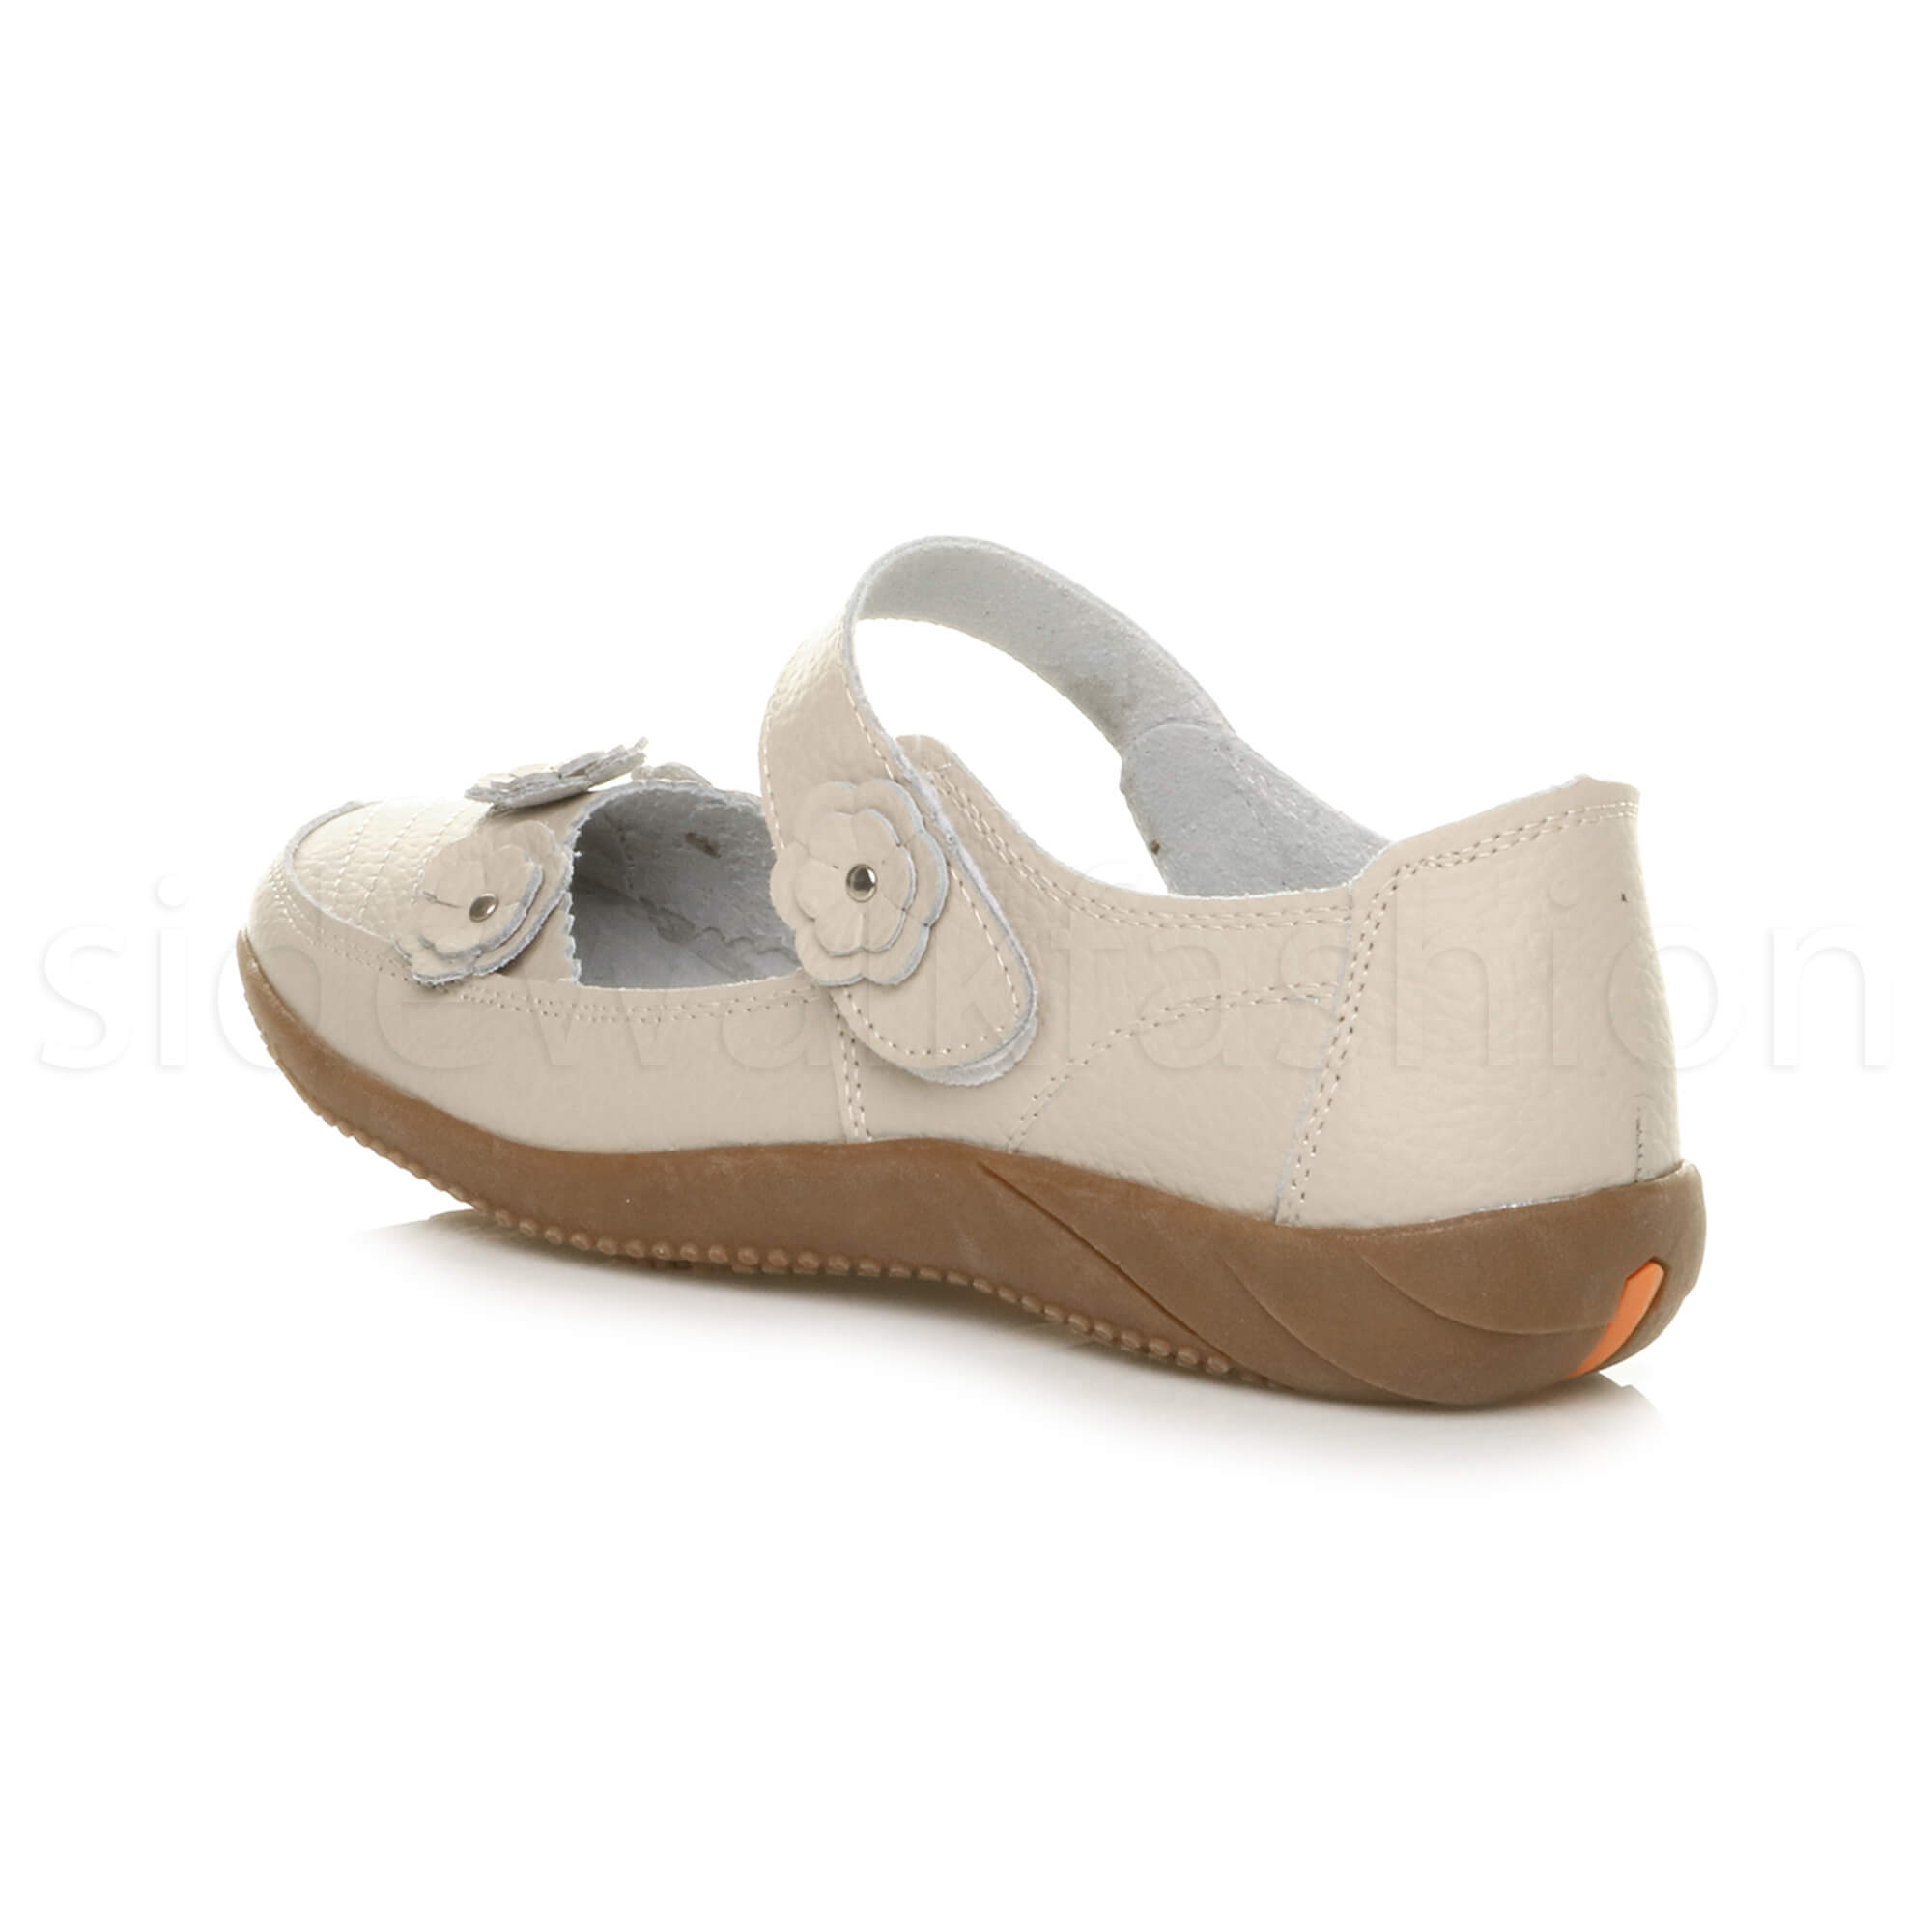 Womens Leather Comfort Shoes Beige